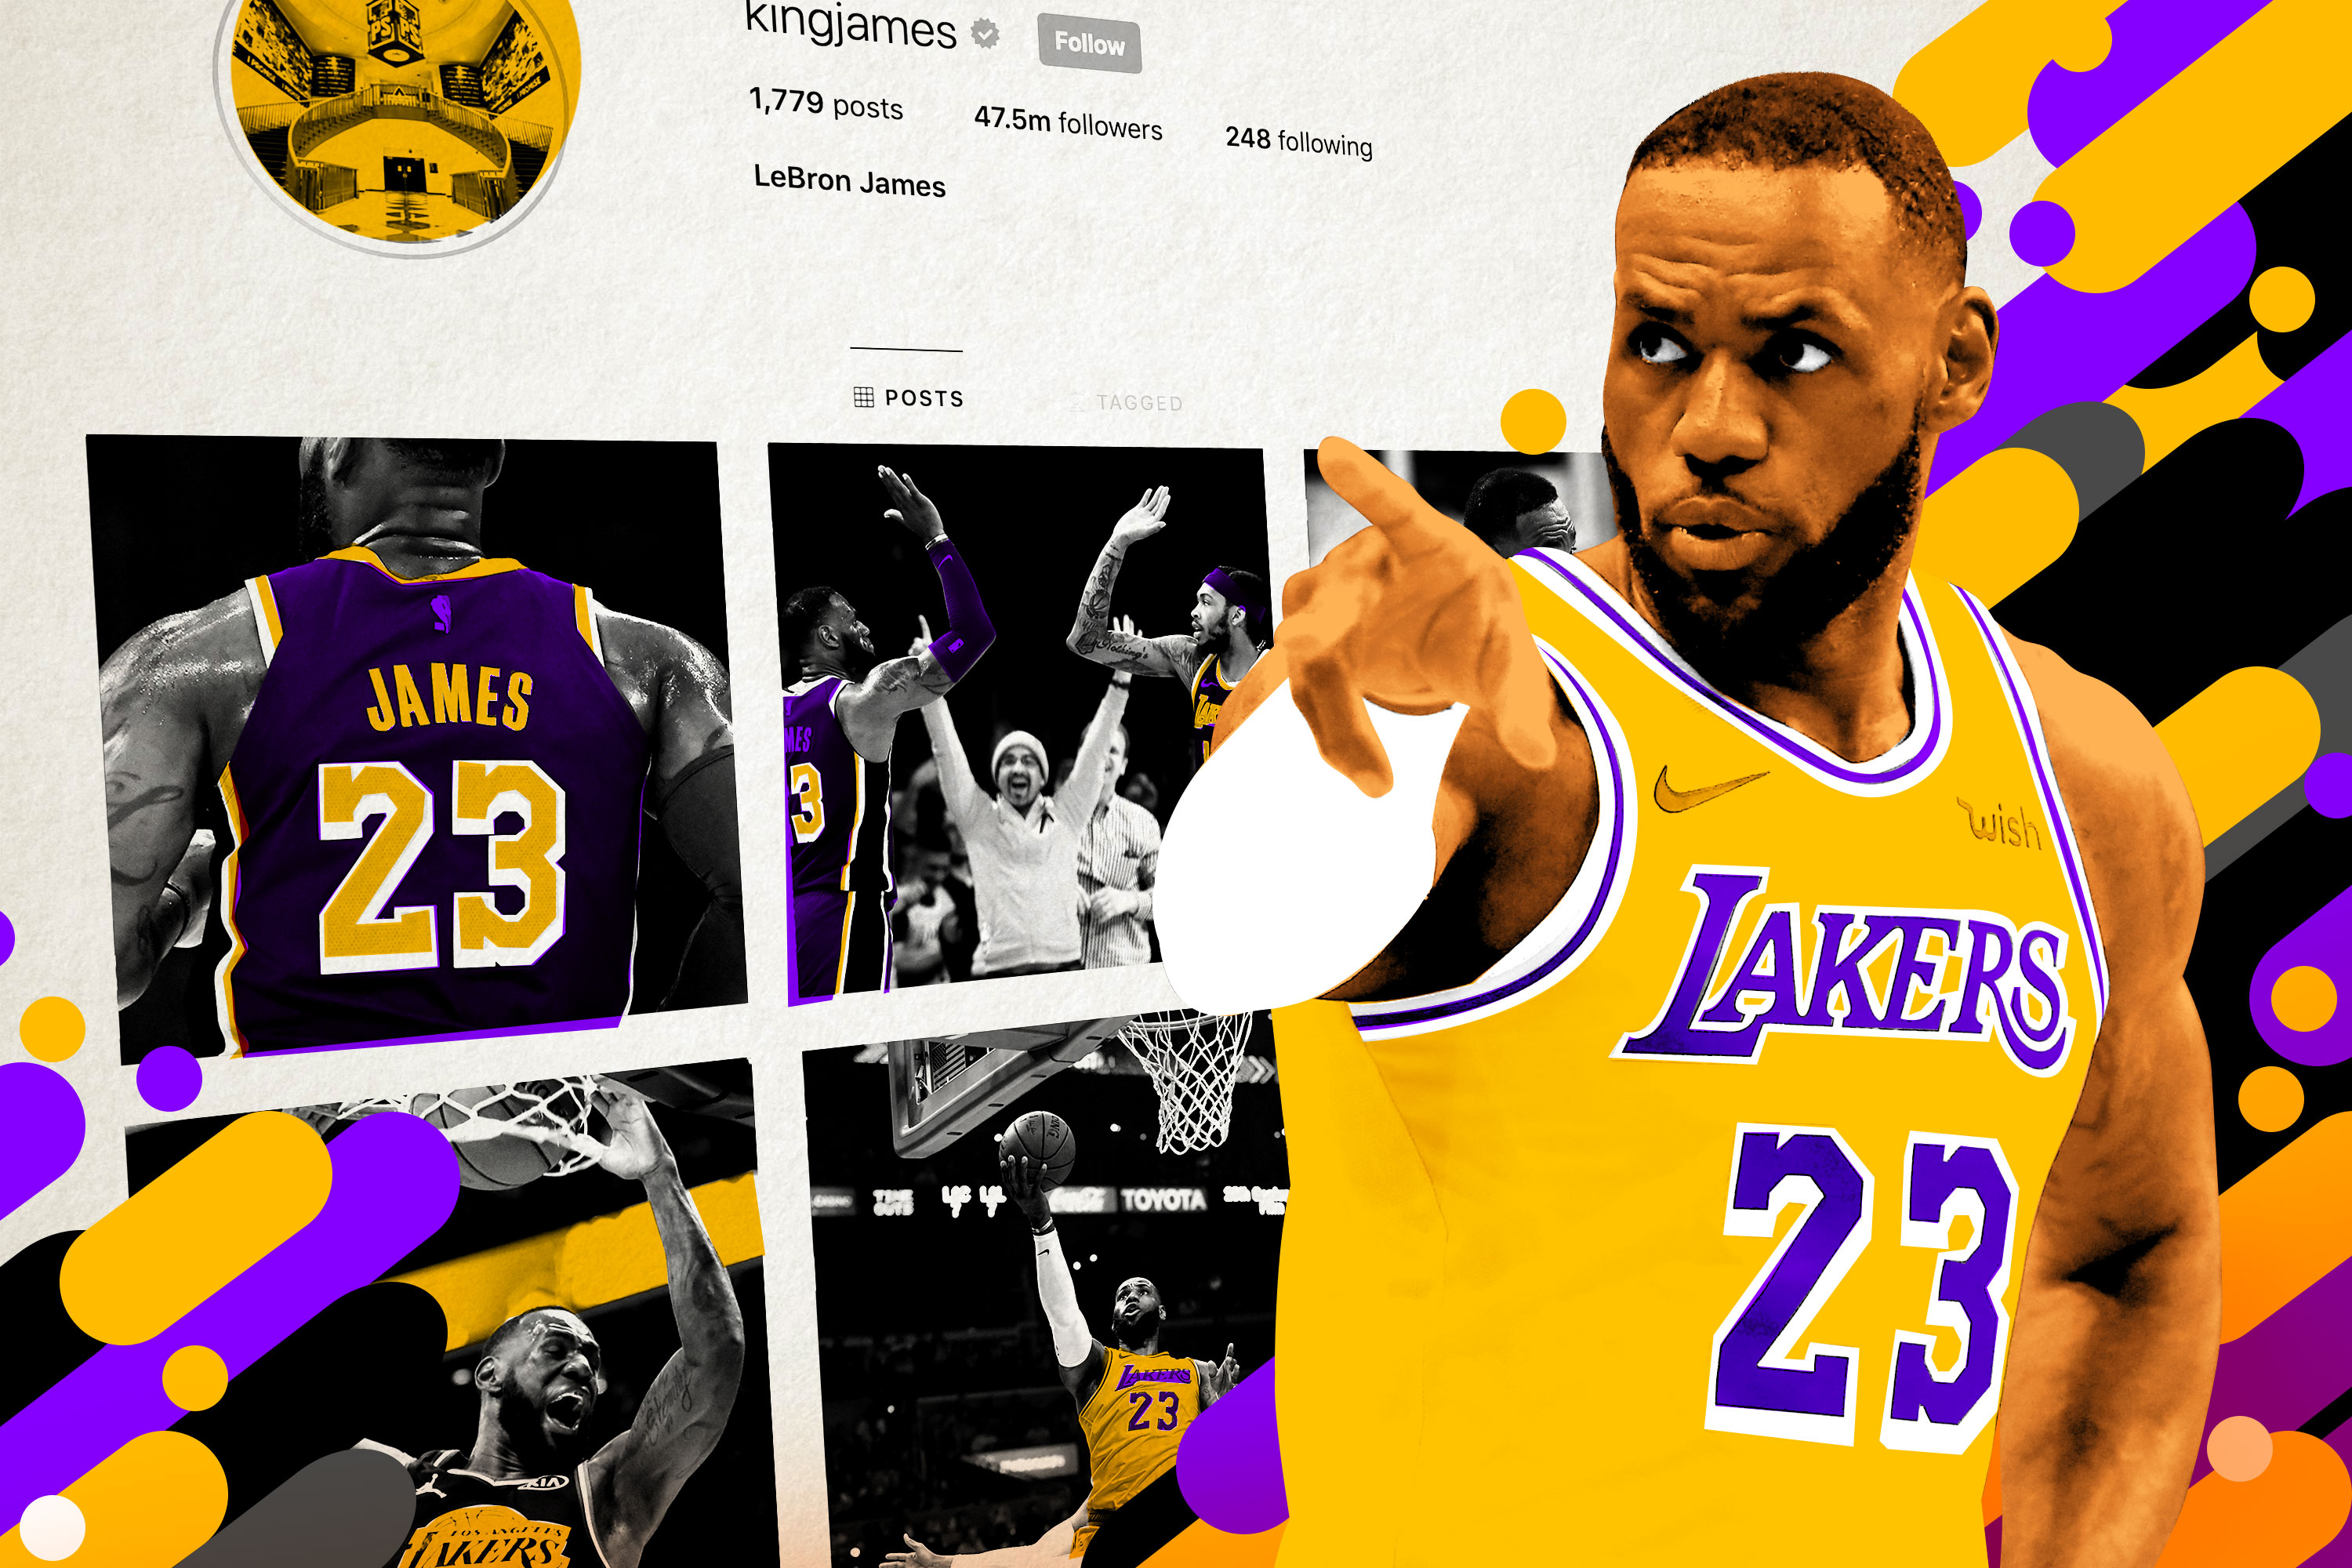 728de6ffaad Reality  What Would the Lakers  2018-19 Season Look Like If You Watched  Only  KingJames and Not LeBron James